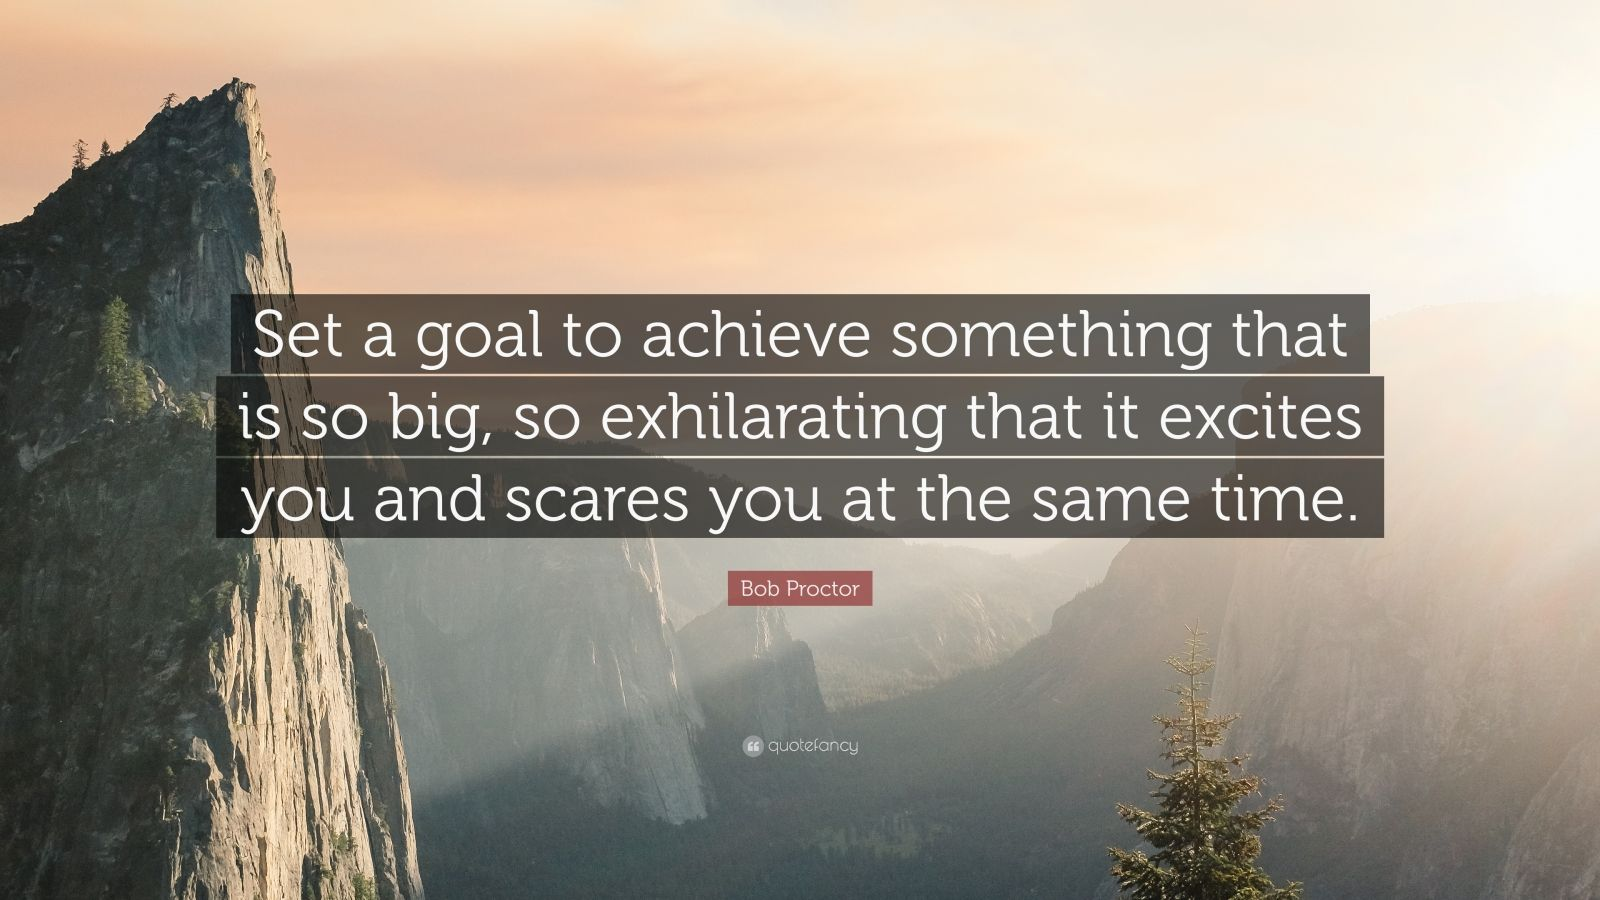 """Bob Proctor Quote: """"Set a goal to achieve something that is so big, so exhilarating that it excites you and scares you at the same time."""""""